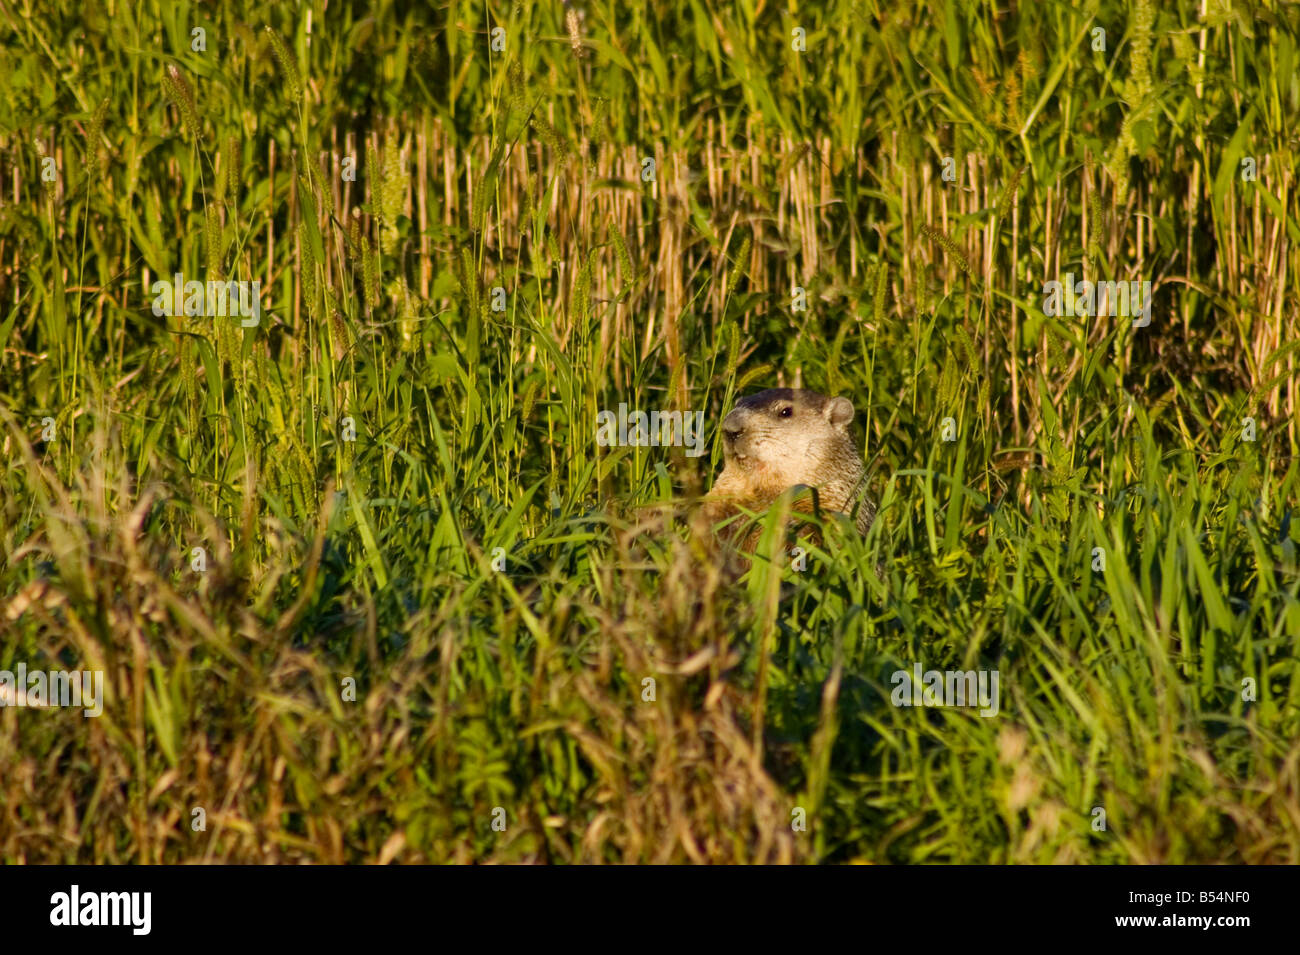 A woodchuck sits up in the weeds growing in the wheat stubble. - Stock Image